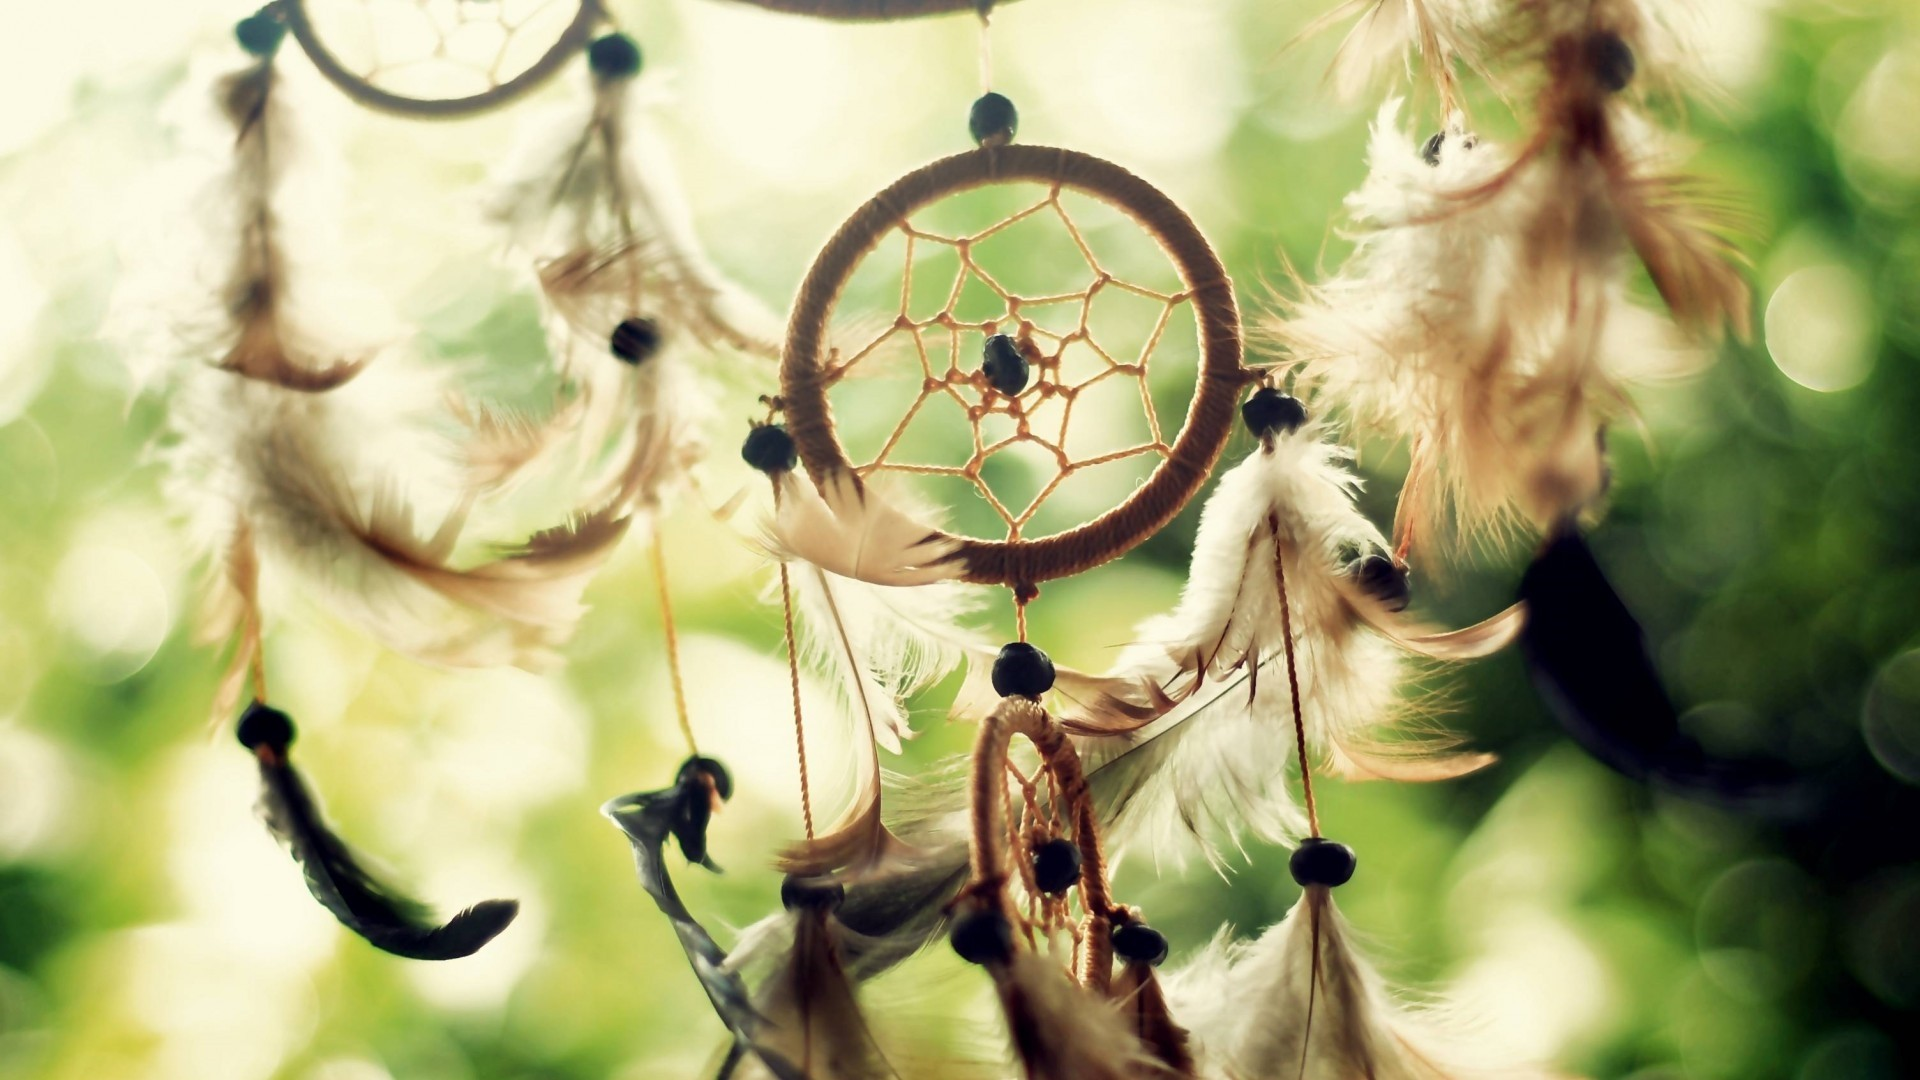 Dreamcatcher a wallpaper